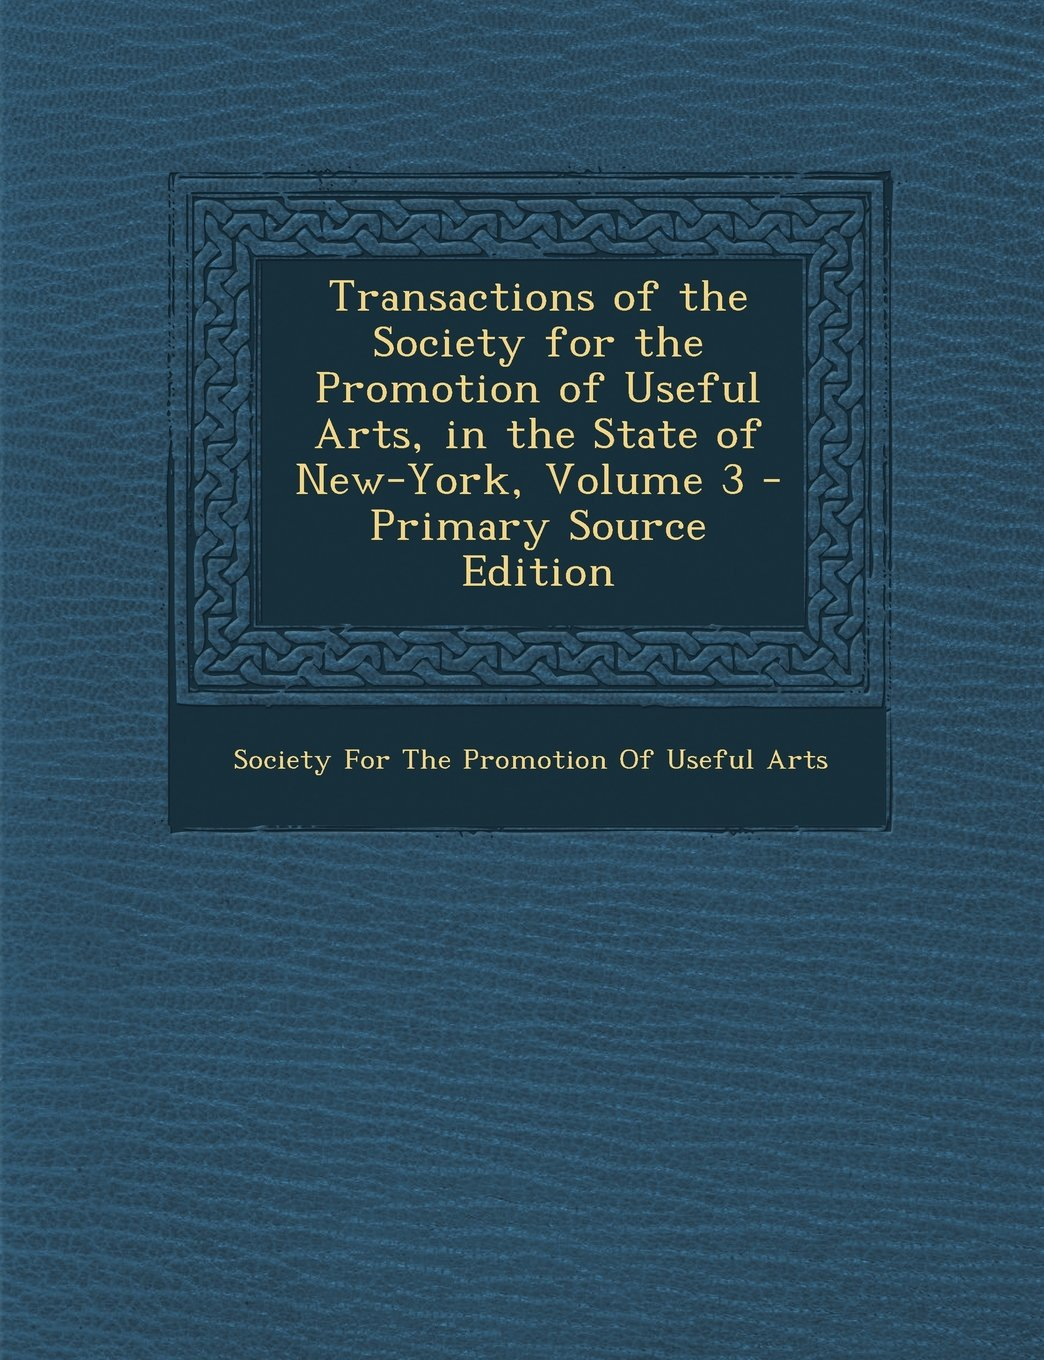 Download Transactions of the Society for the Promotion of Useful Arts, in the State of New-York, Volume 3 - Primary Source Edition ebook